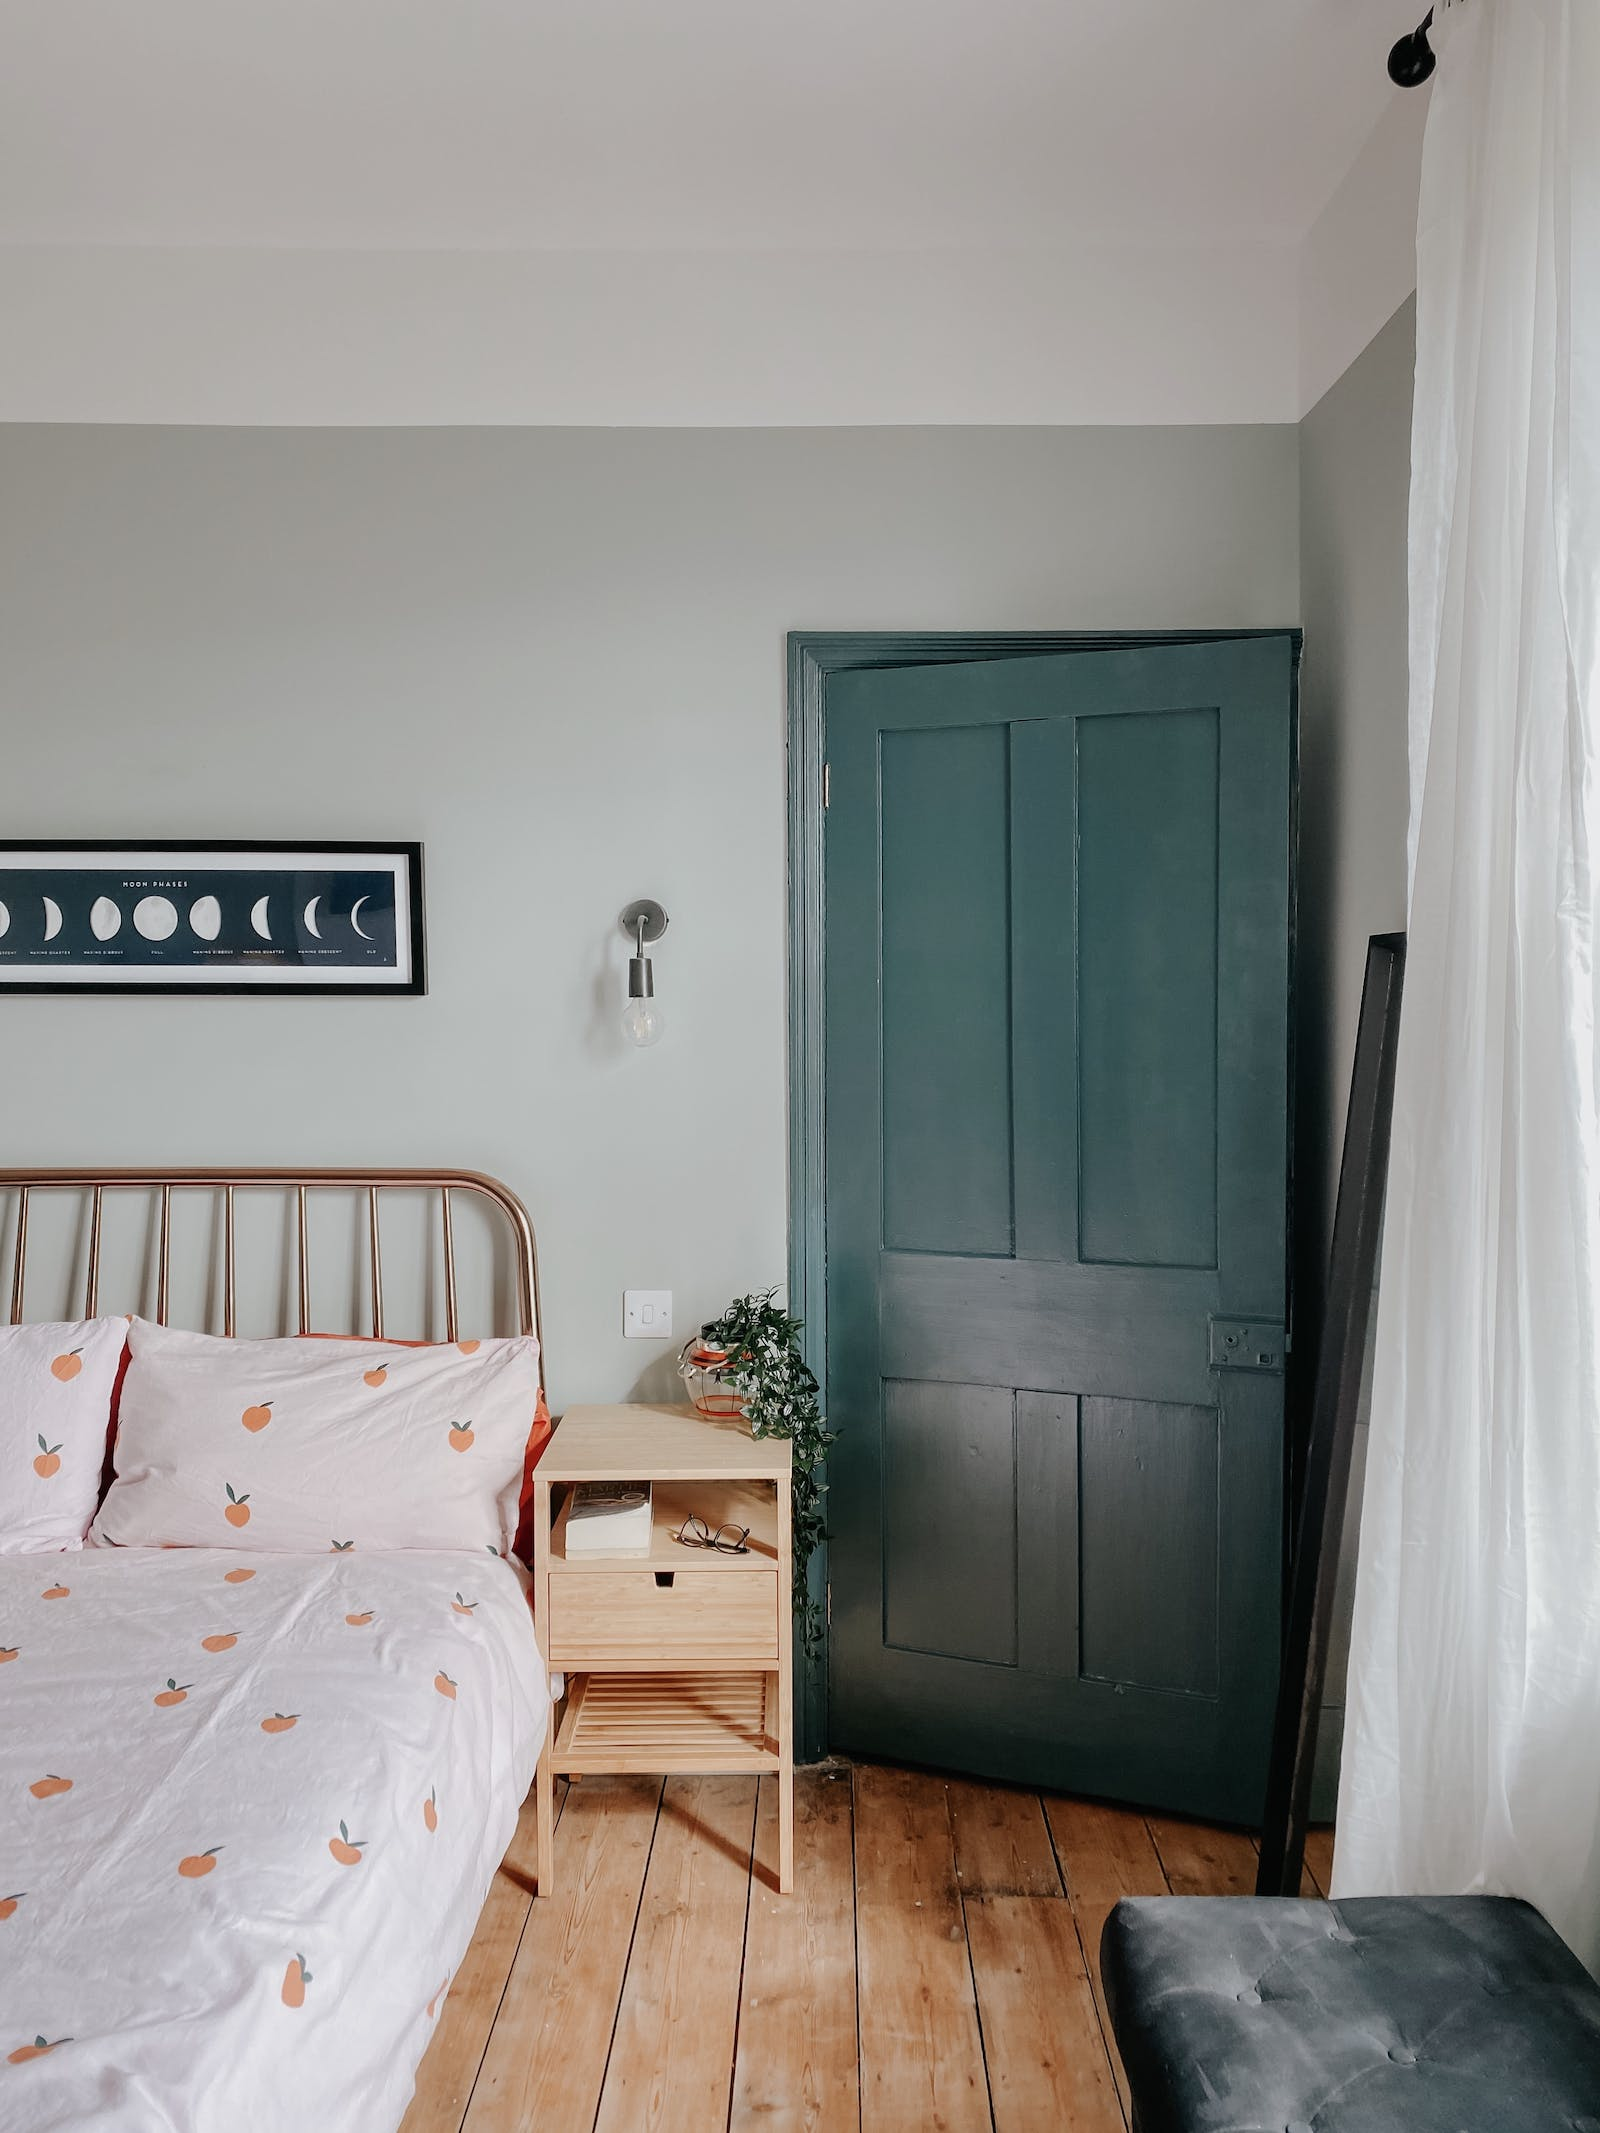 Mint colour bedroom walls and teal coloured bedroom door